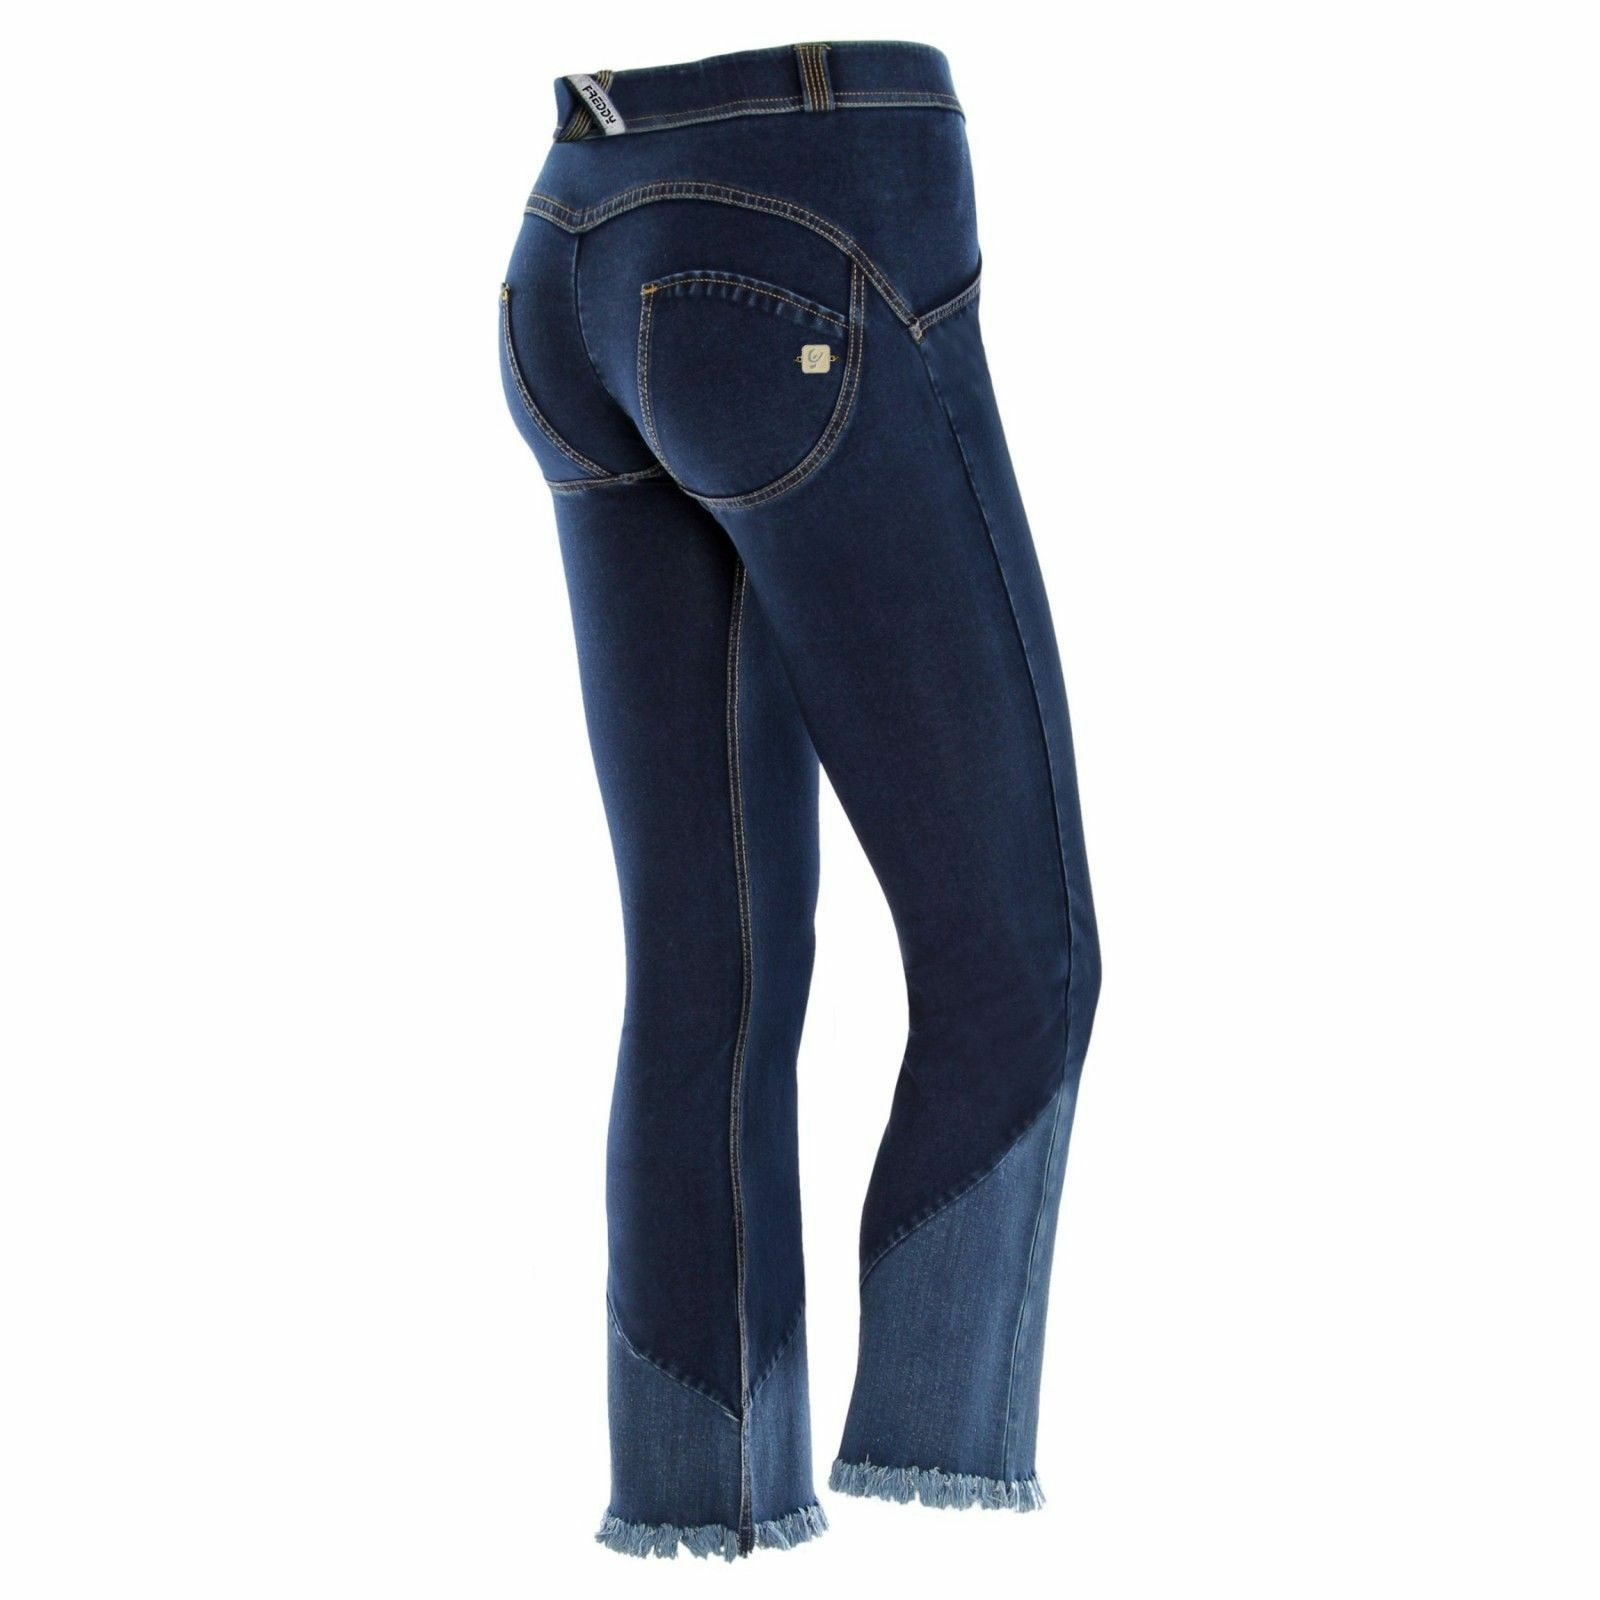 FREDDY WR.UP® PANT Mid Waist Full Length WR.UP Denim - Fringed Denim